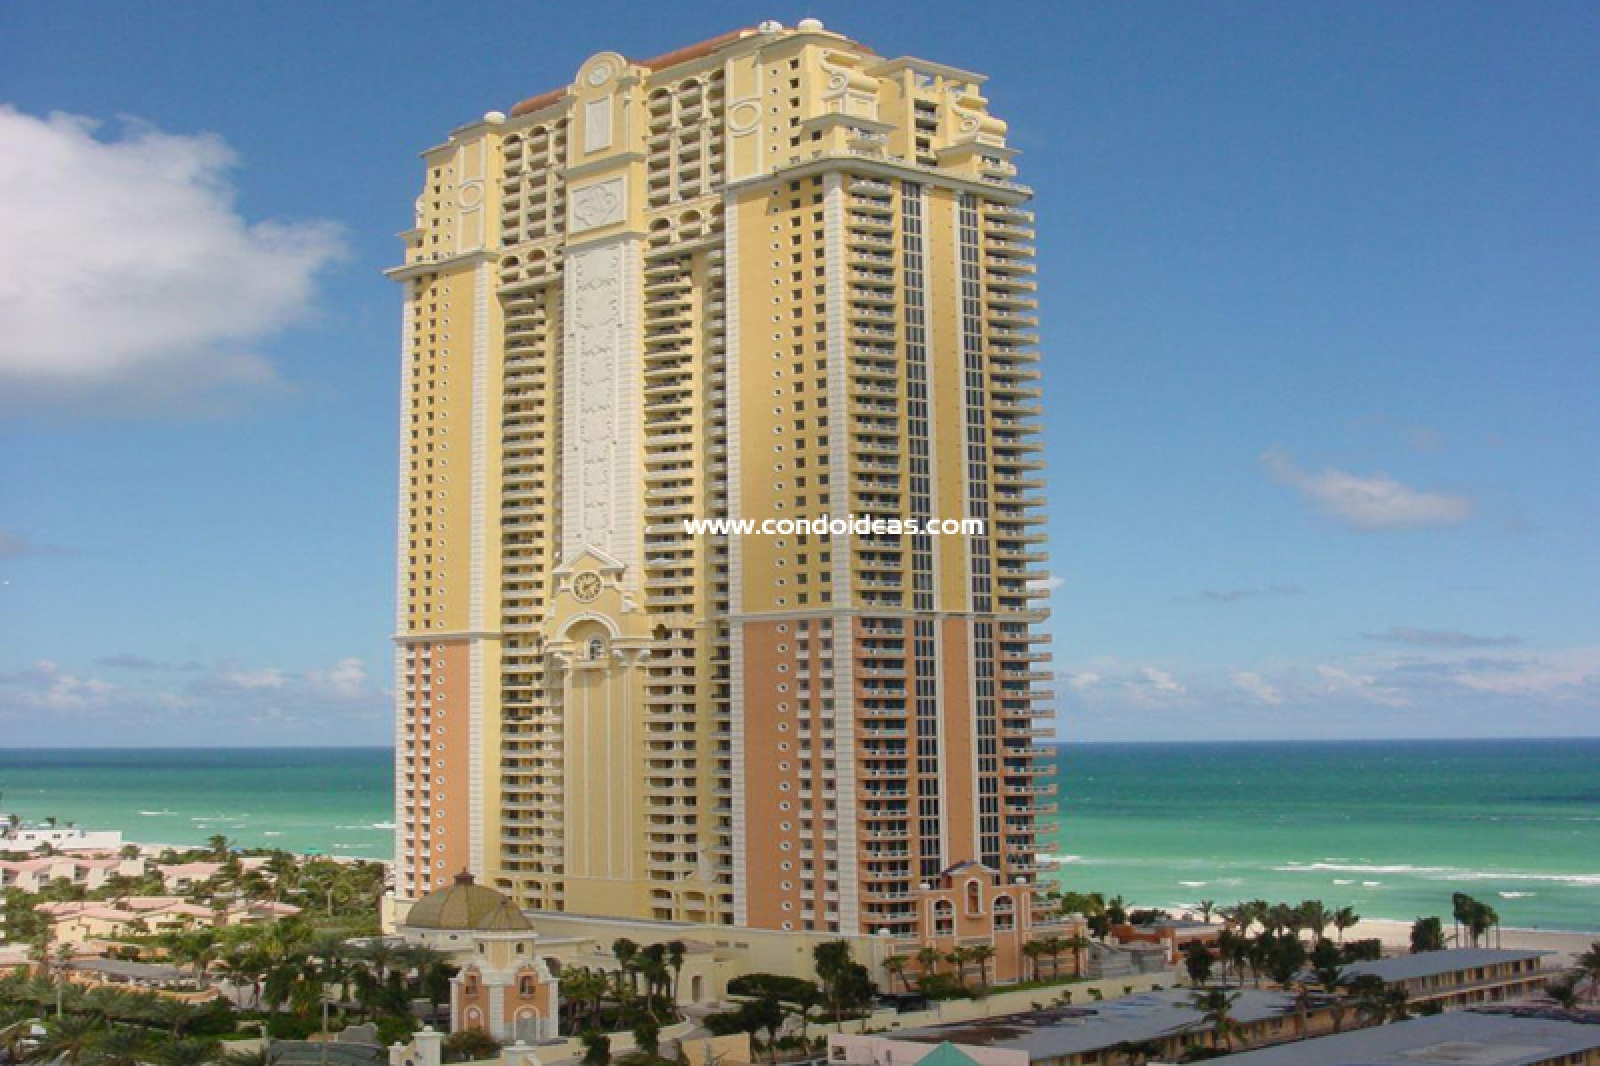 Acqualina condo